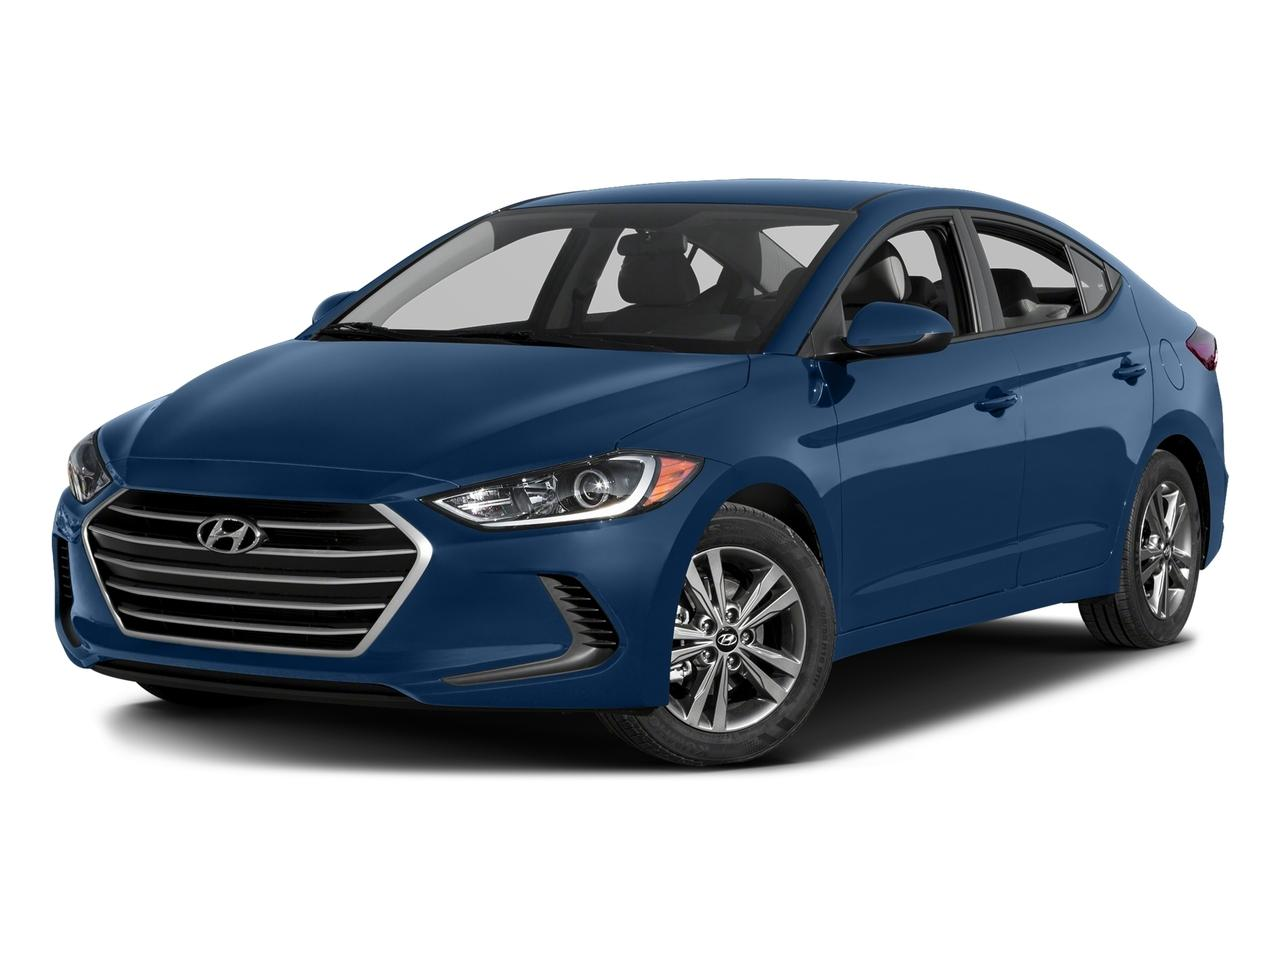 2017 Hyundai Elantra Vehicle Photo in Edinburg, TX 78542